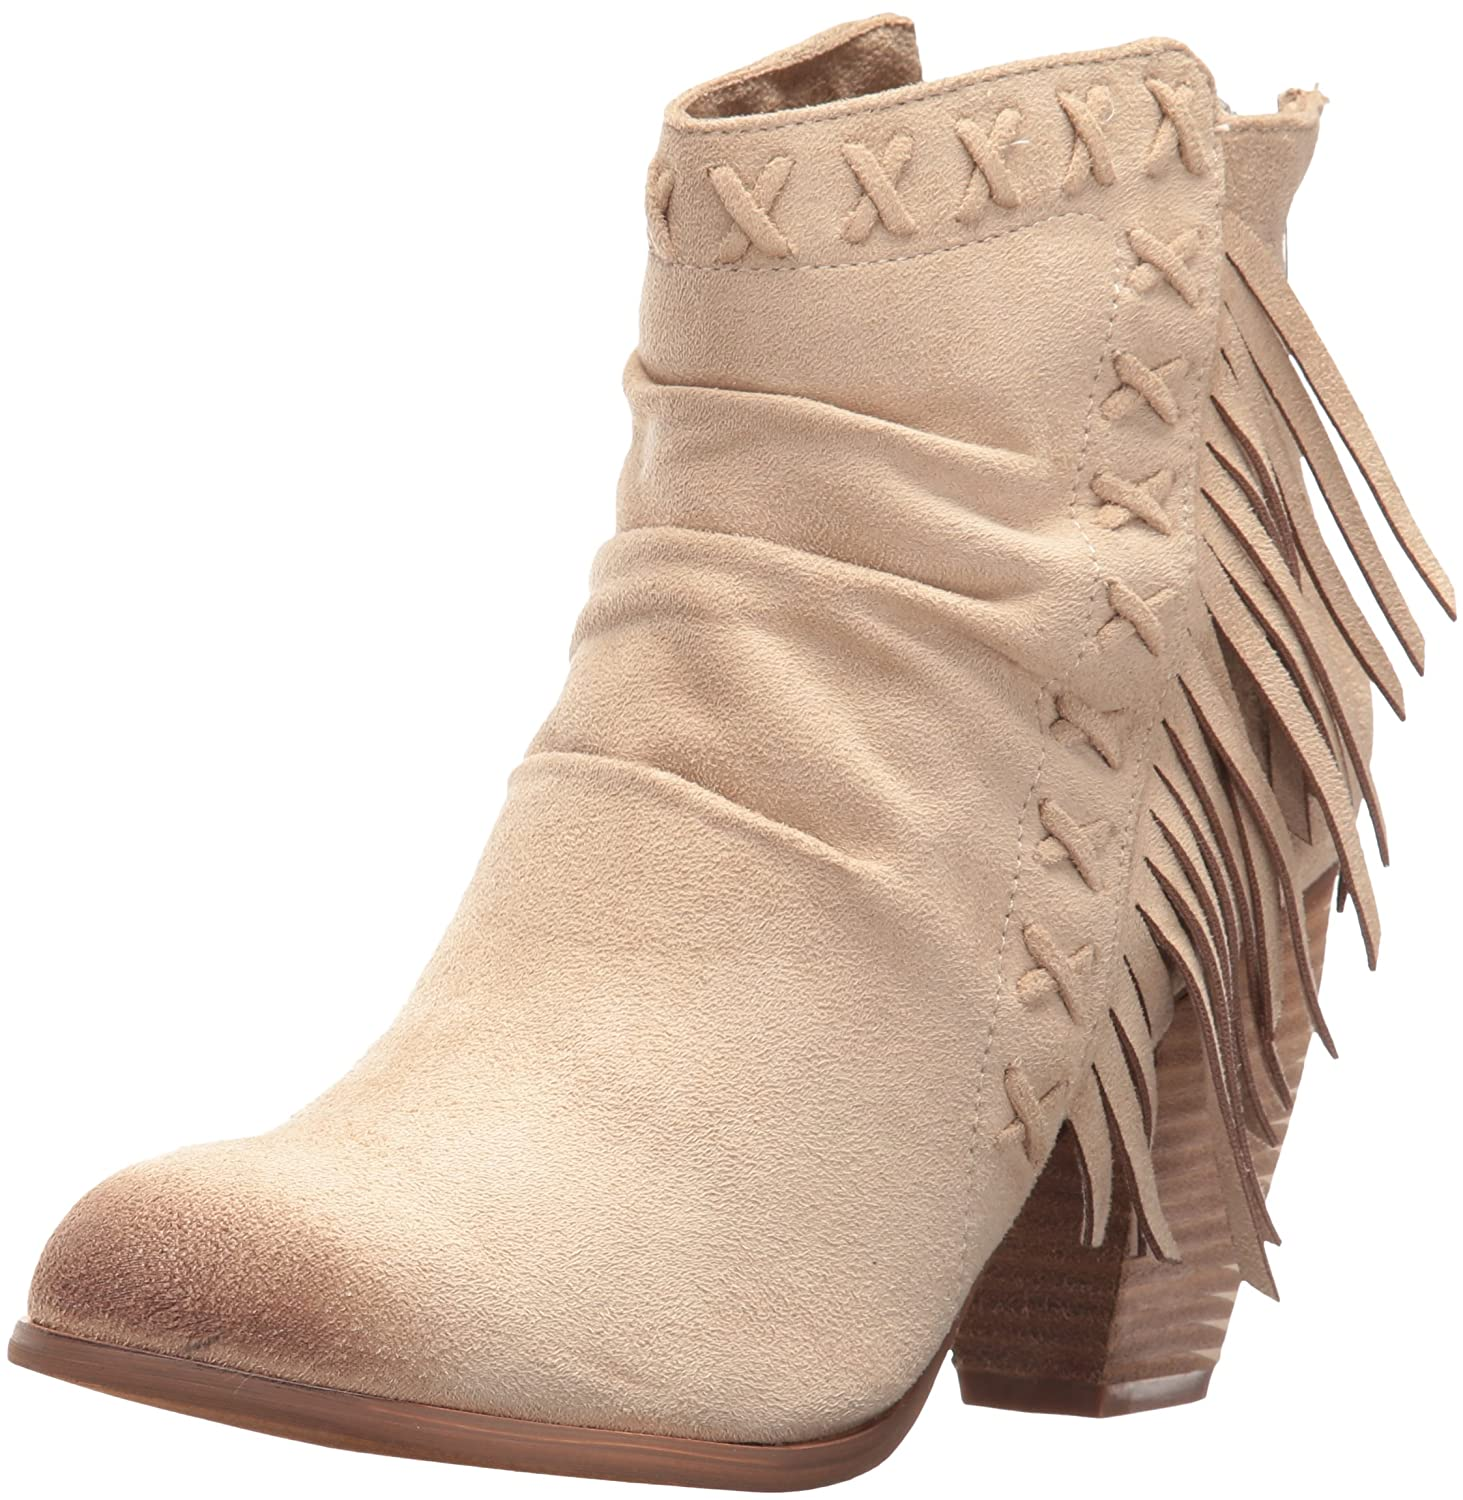 Not Rated Women's Angie Boot B01GKW0RX6 10 B(M) US Cream